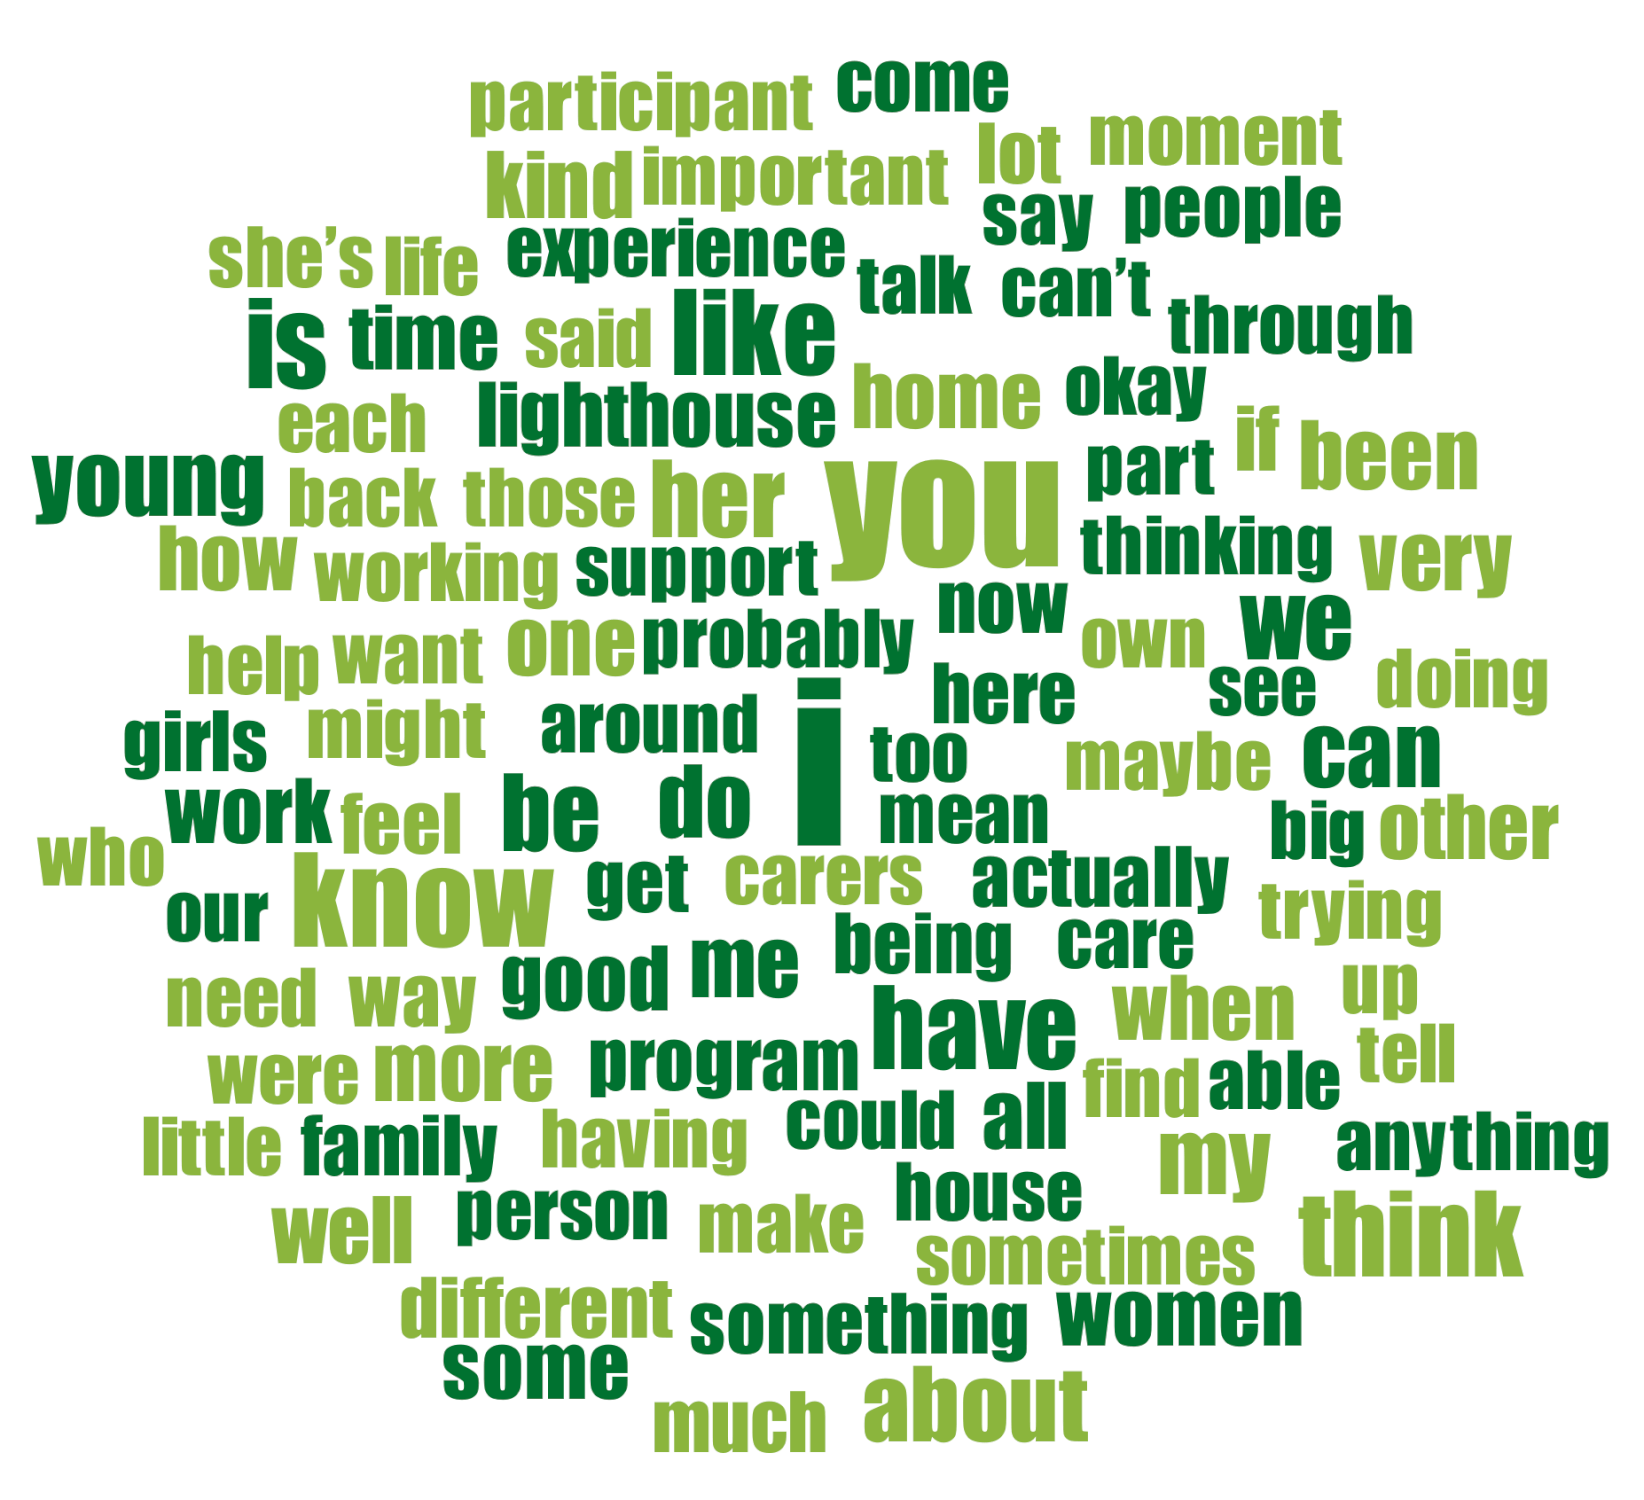 Word cloud from interview transcripts